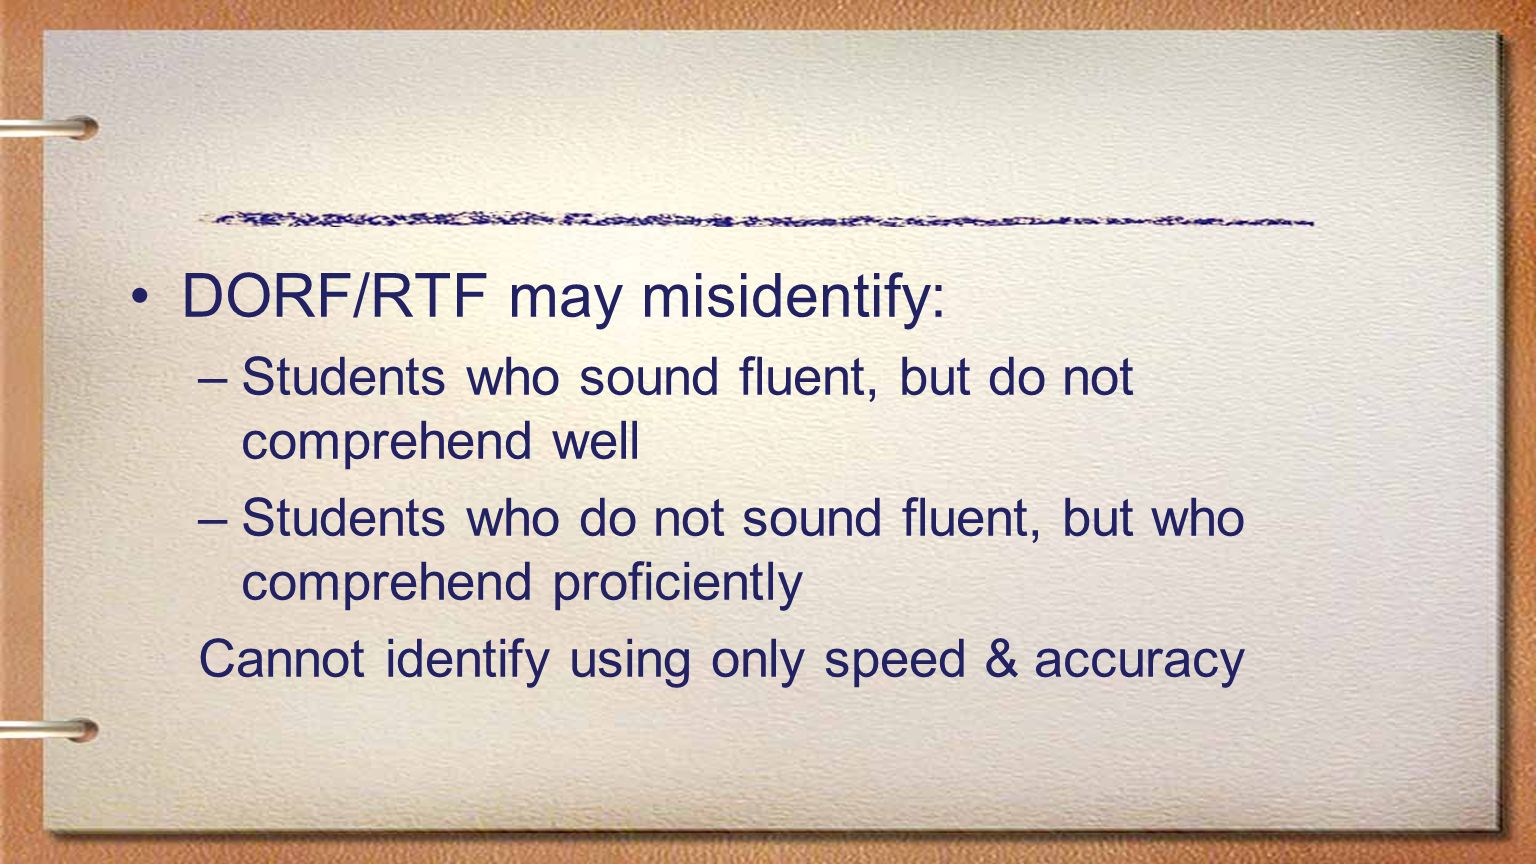 DORF/RTF may misidentify: –Students who sound fluent, but do not comprehend well –Students who do not sound fluent, but who comprehend proficiently Ca